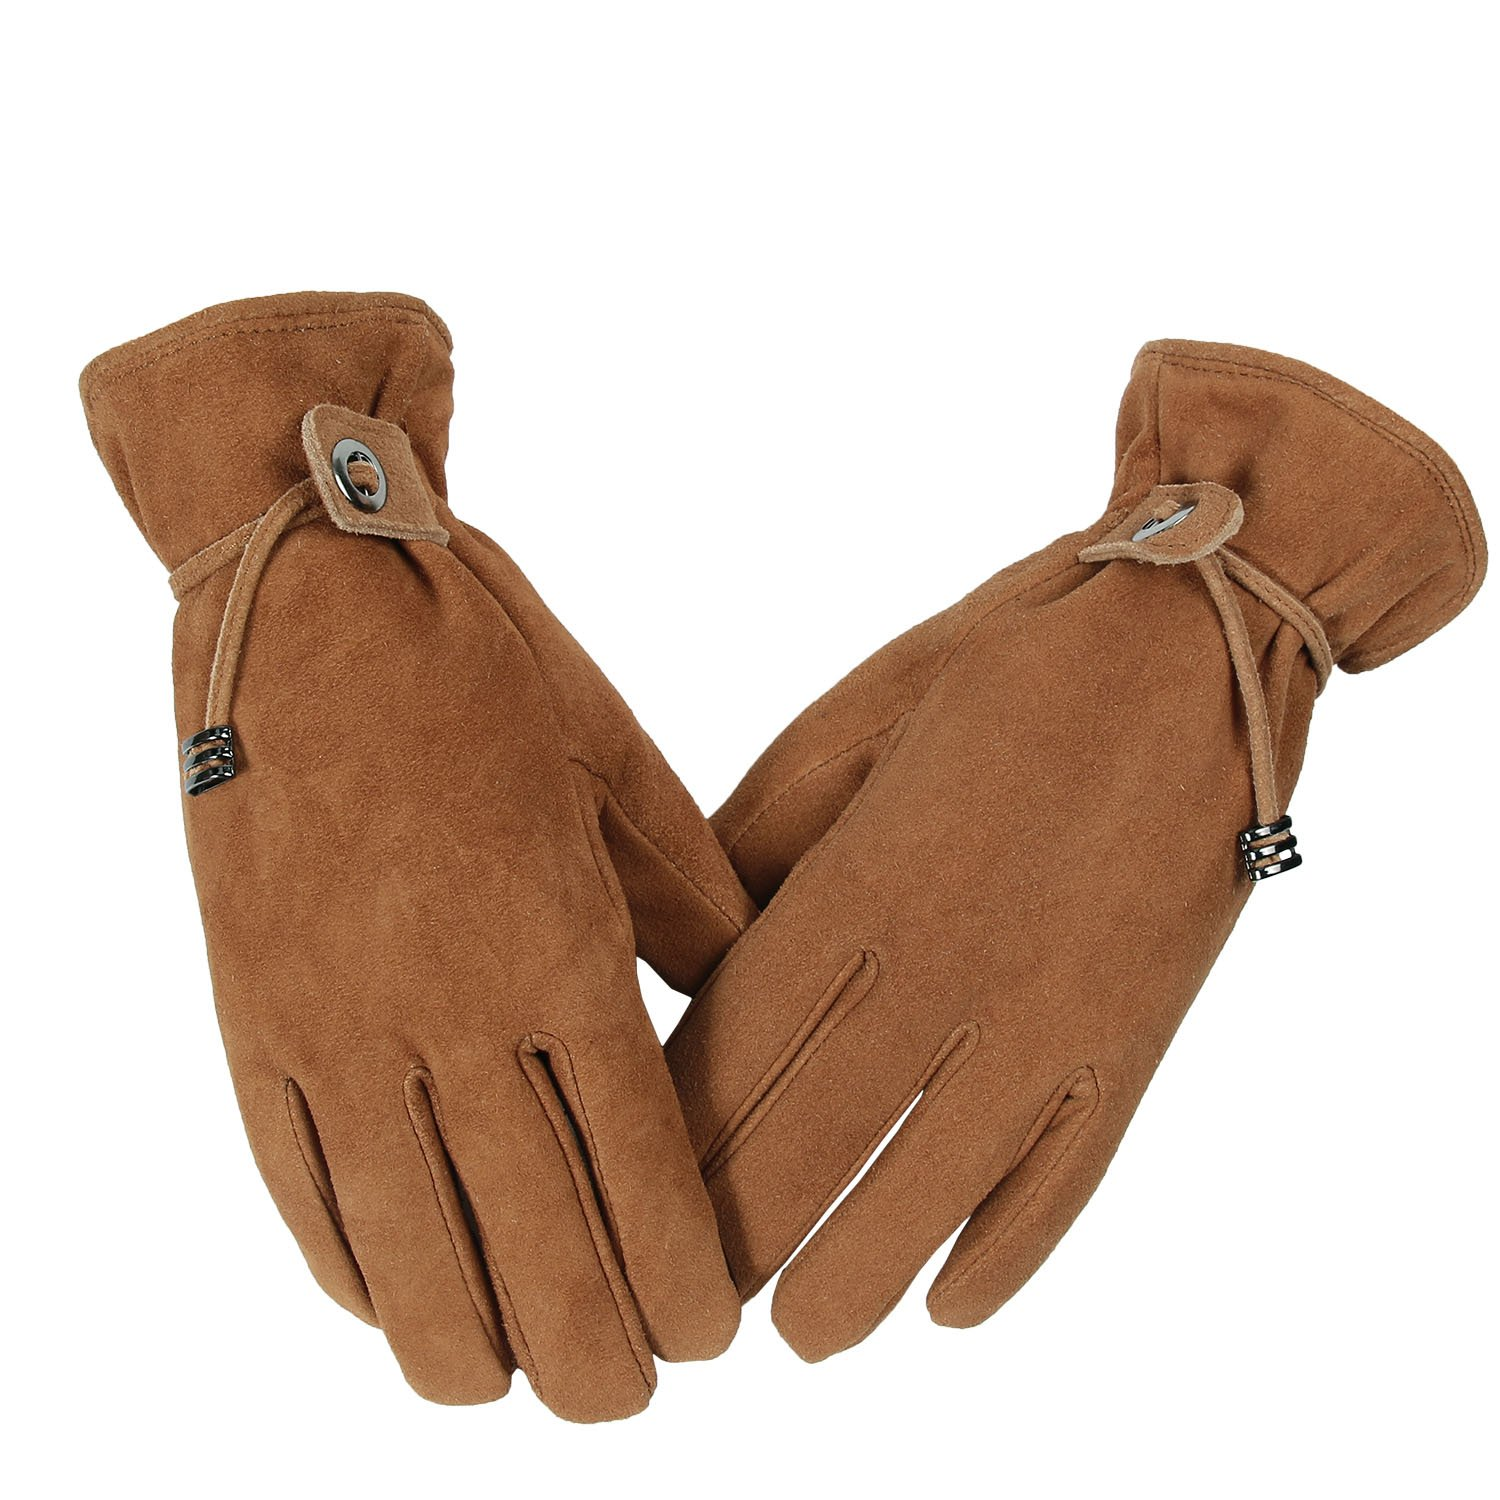 OZERO Driving Gloves, Deerskin Suede Leather Winter Snow Ski Fashion Glove - Sensitive Touch Screen Fingertips Silky Velour Fleece Lining - Warm Hand in Cold Weather Womens/Girls (Brown,Large)